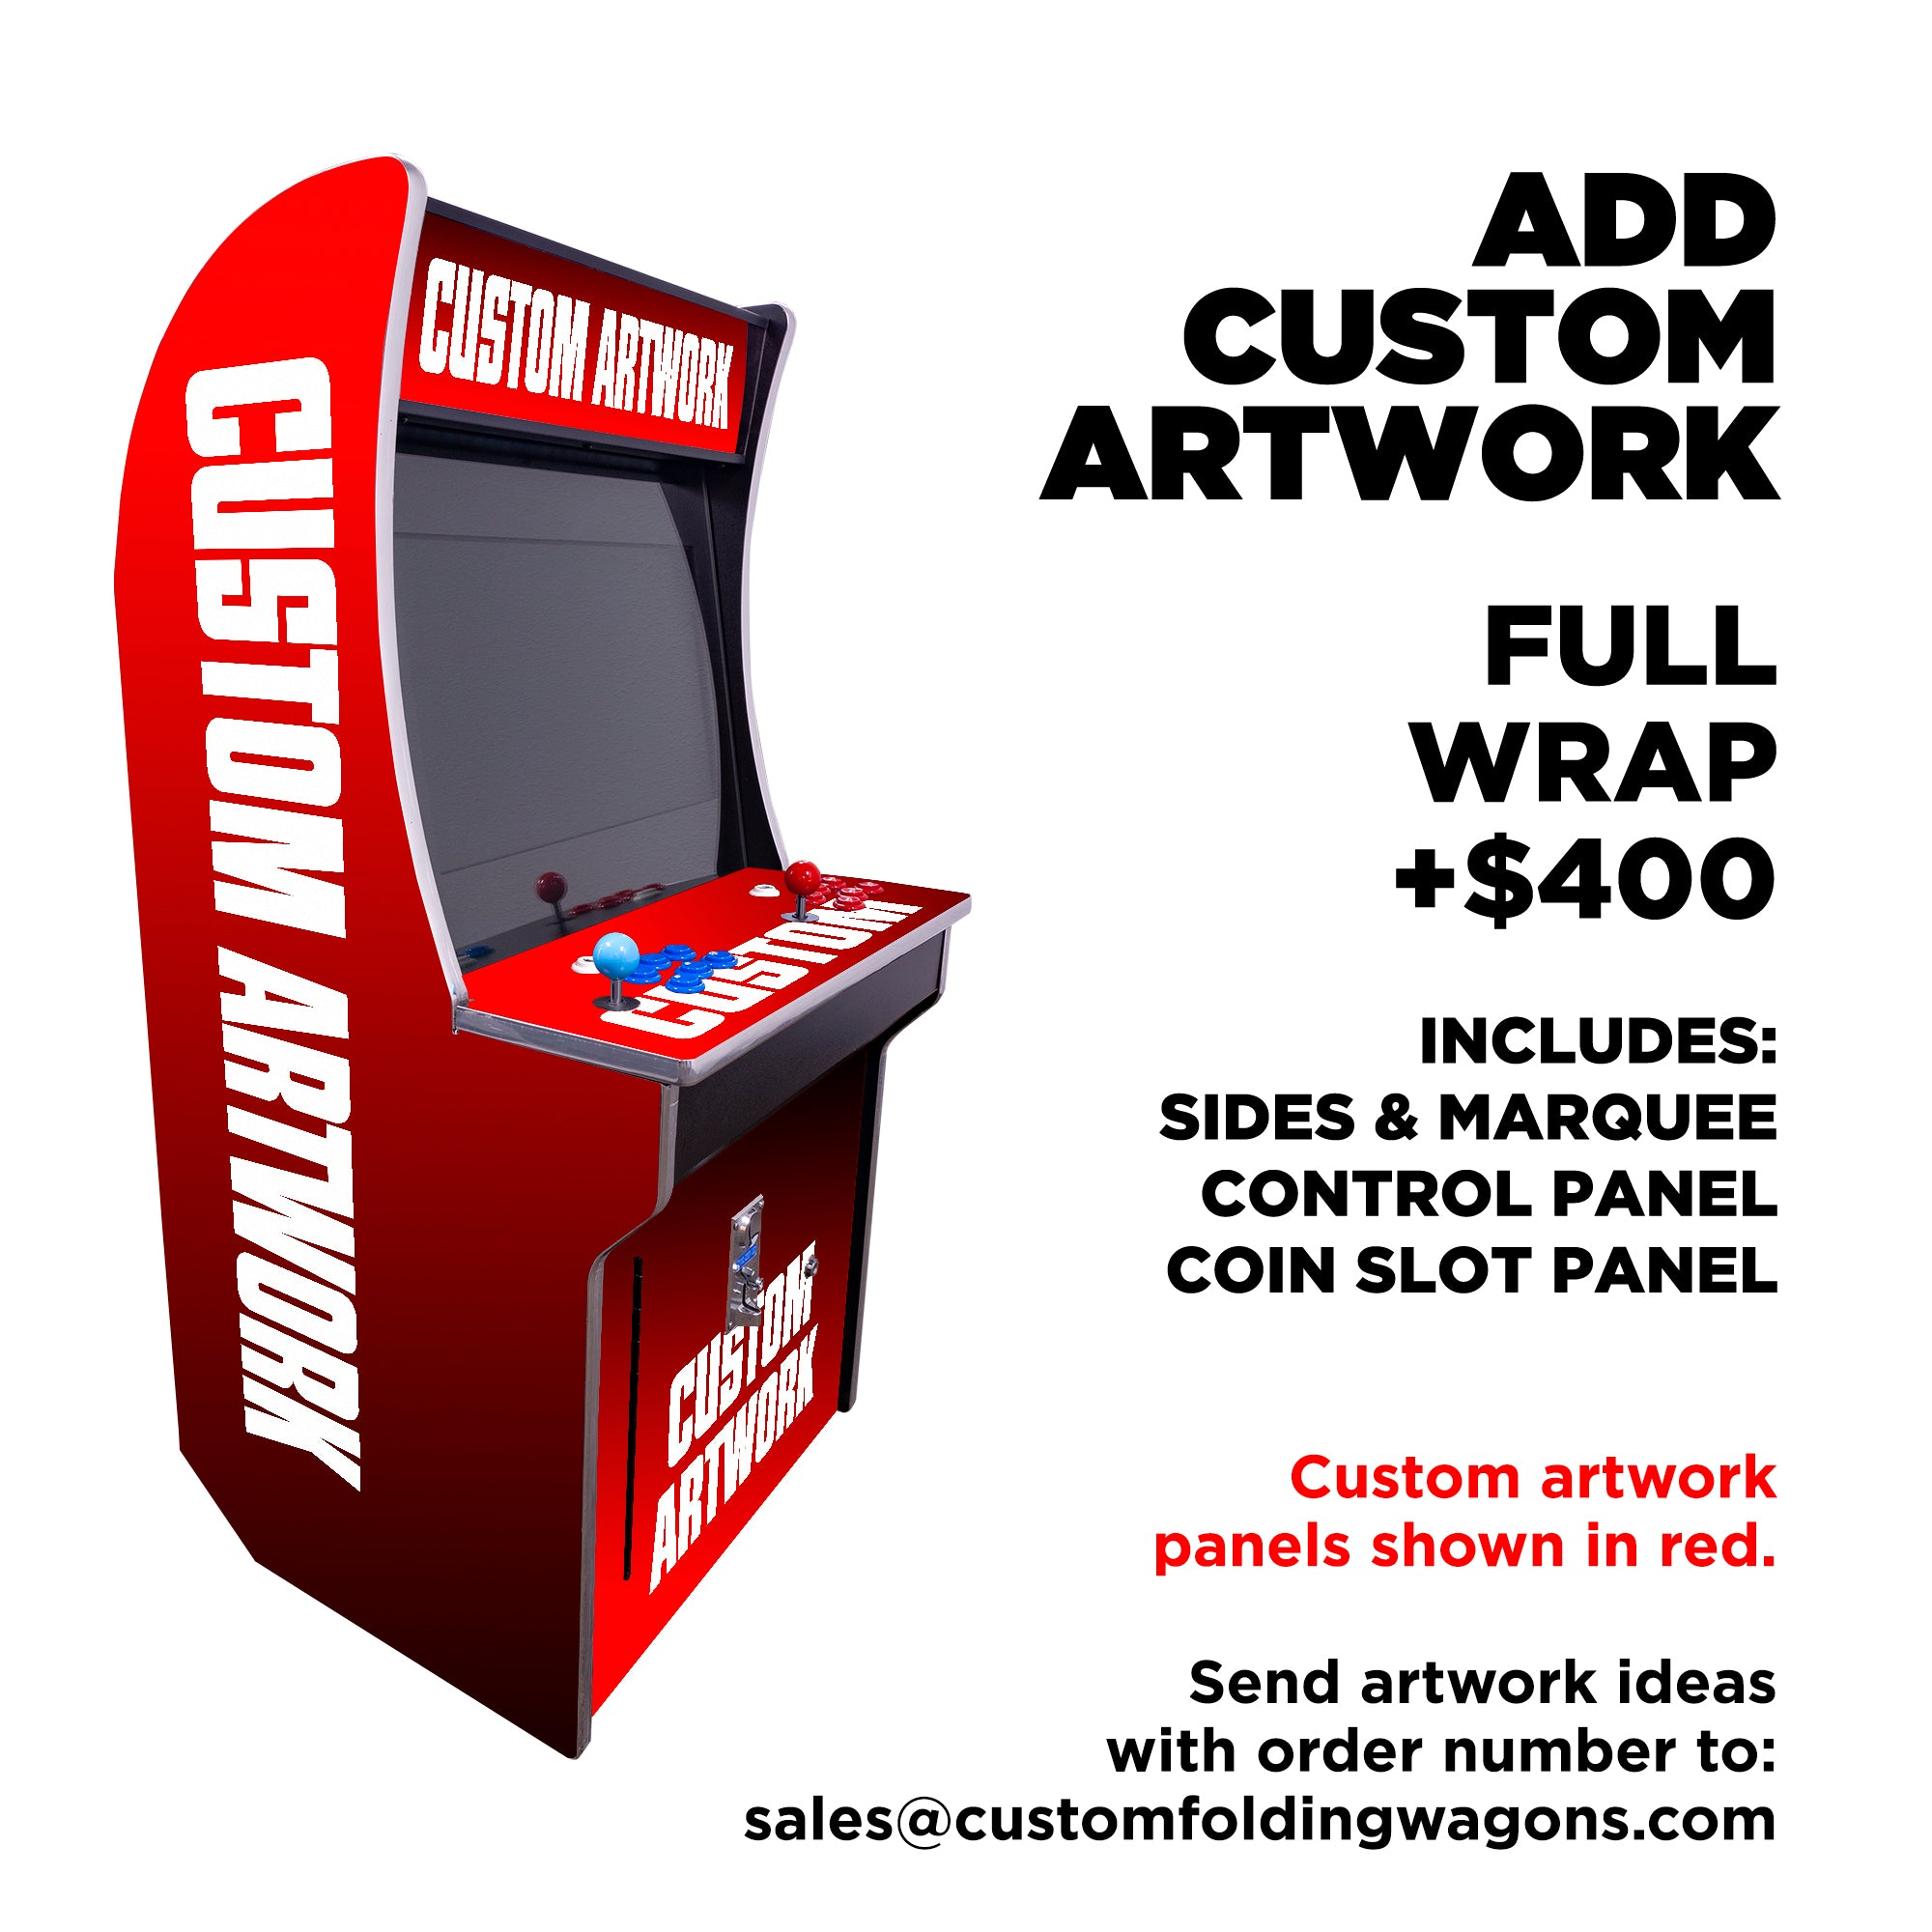 151023 Mini Kids Arcade 2323 Games Custom Artwork Full Wrap